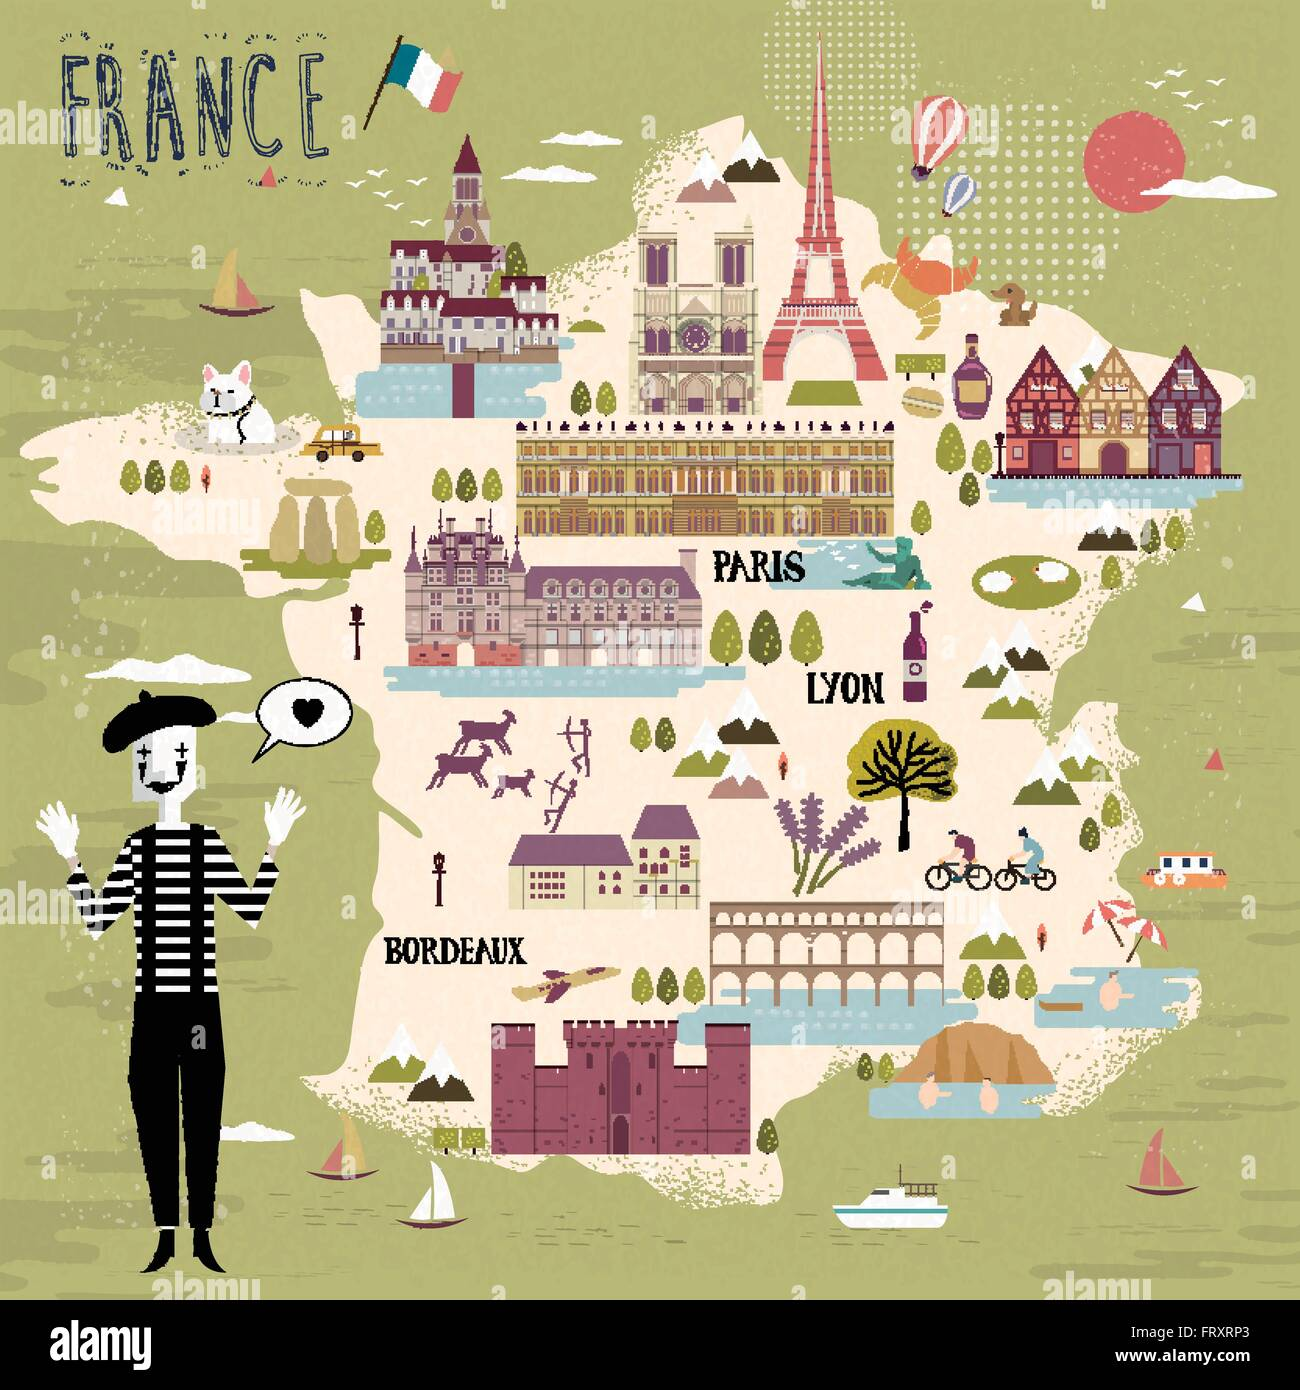 adorable France travel map with attractions and specialties - Stock Image